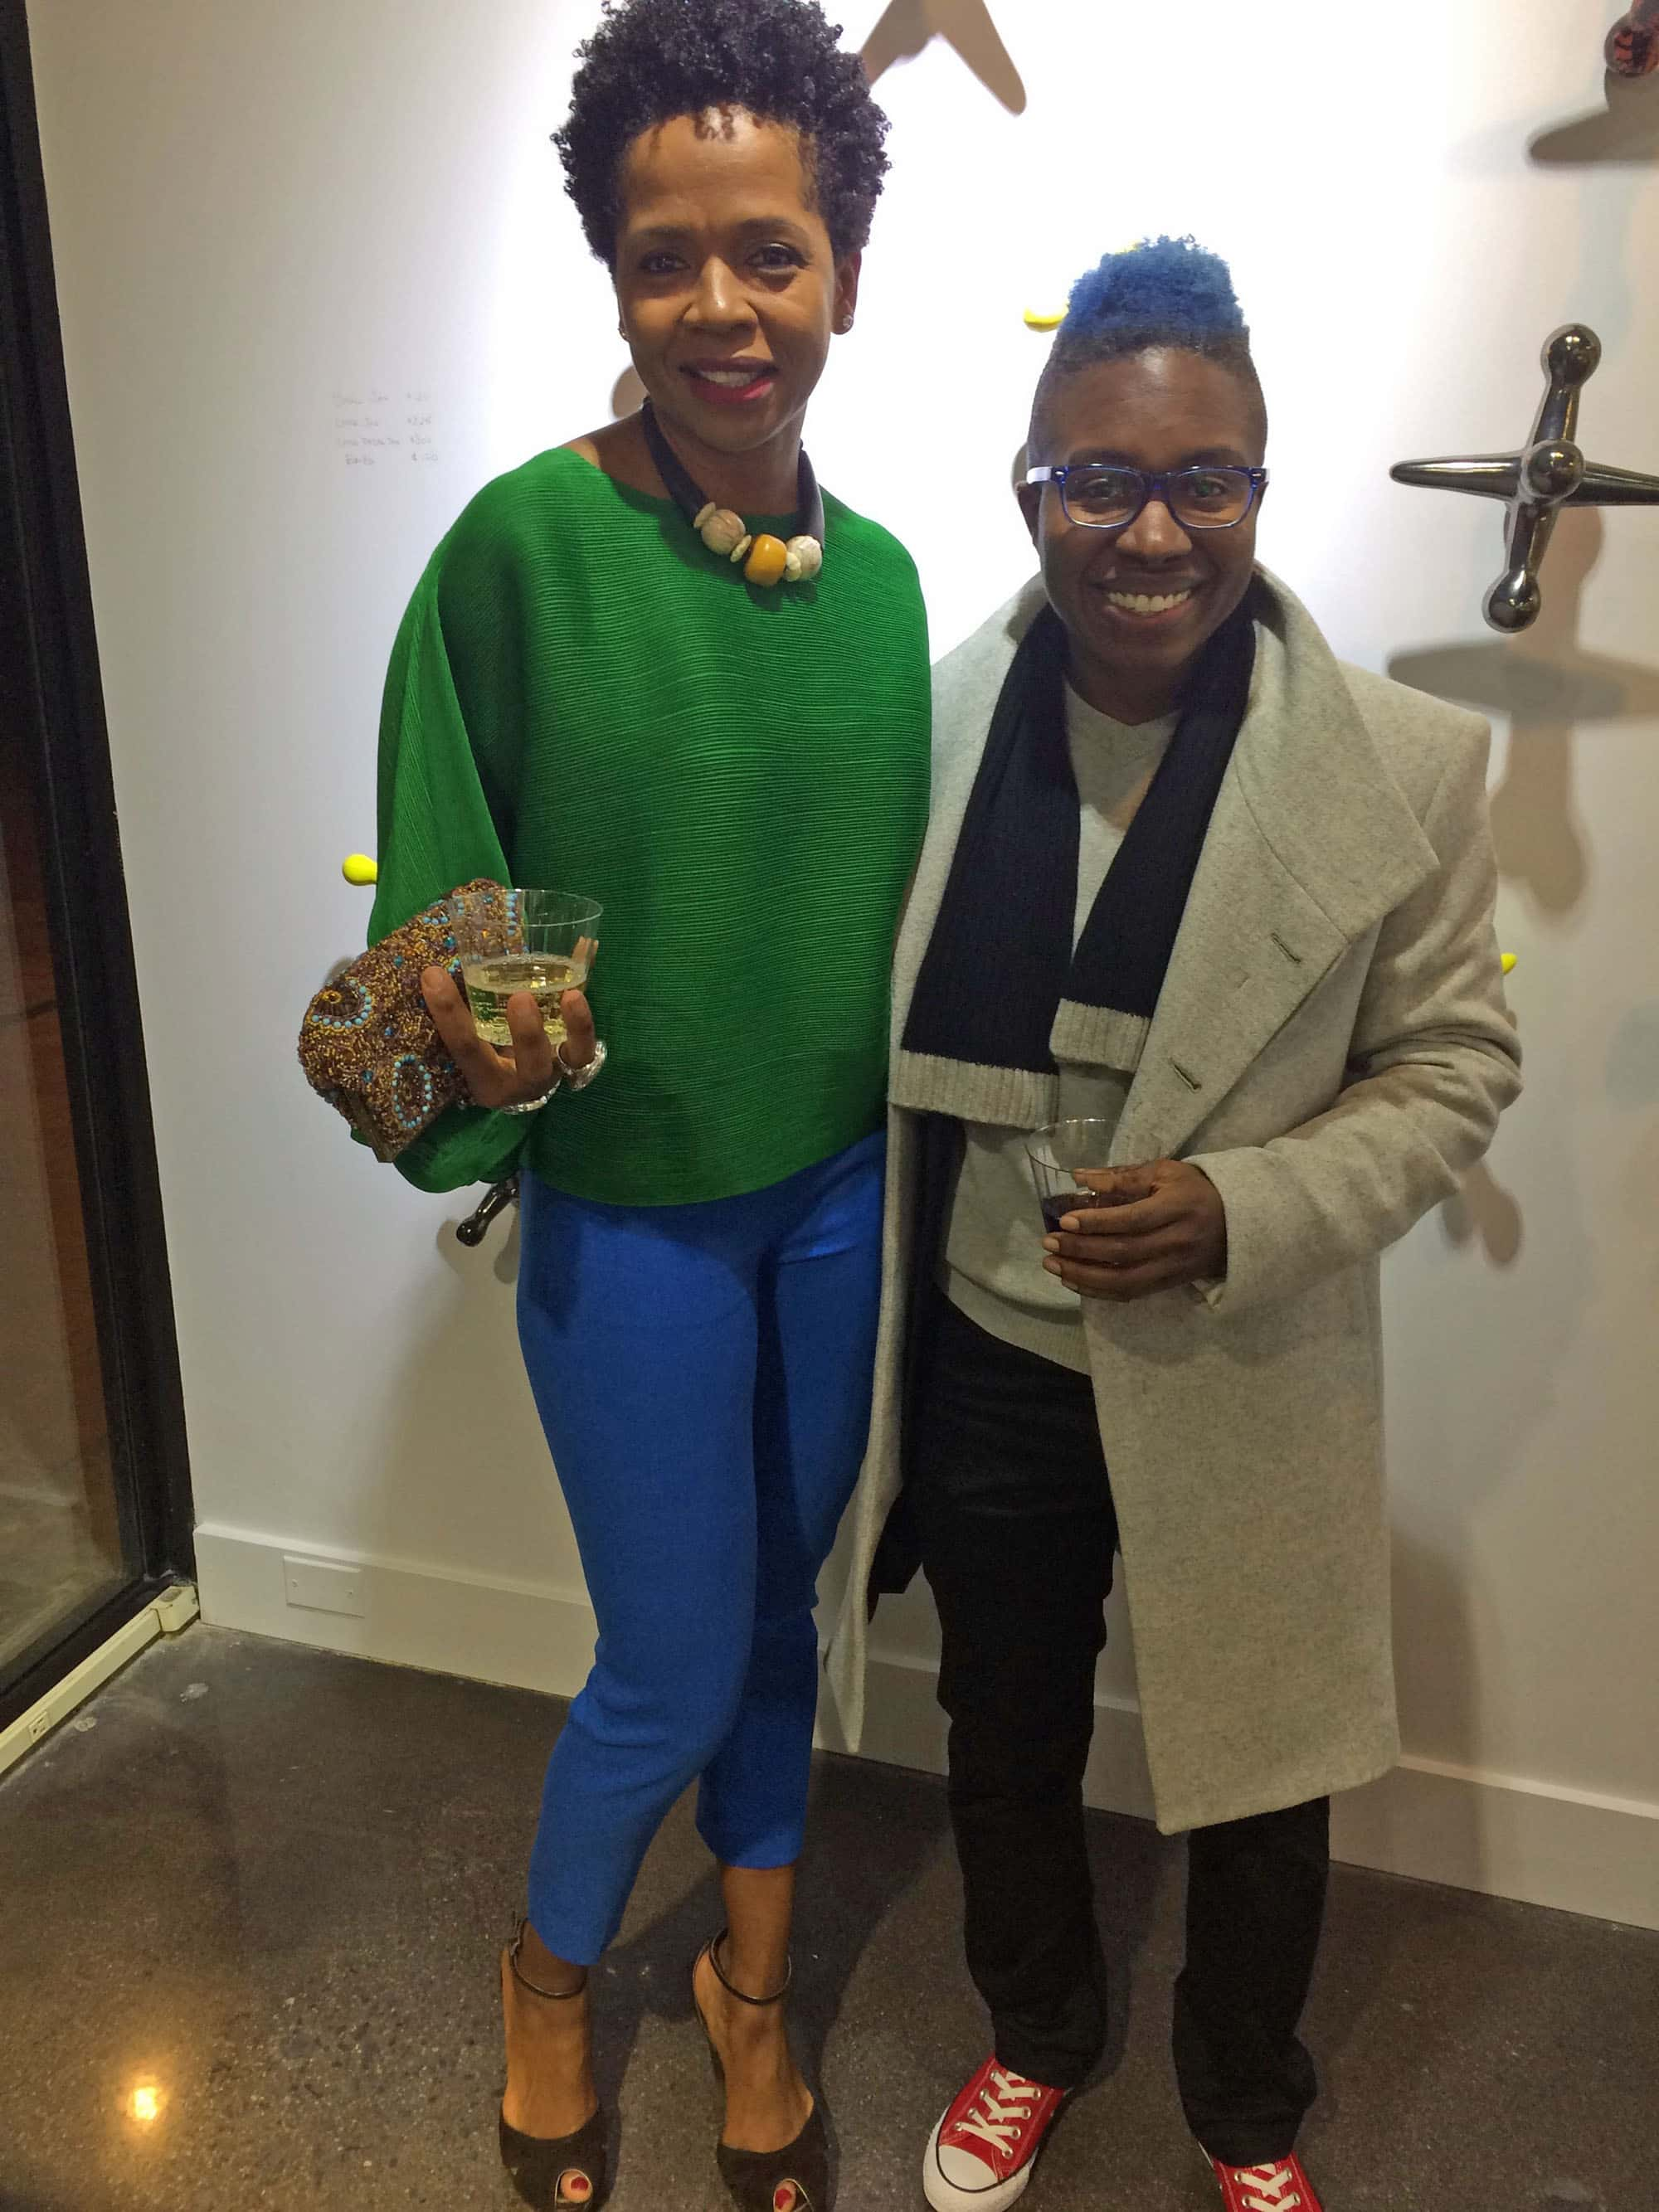 Also in attendance were Dahlia Woody and her partner Q Ragsdale. Dahlia said she couldn't remember where she got her vivid green-and-blue ensemble. But there was no mistaking who made Q's classic red low-top Chuck Taylors – Converse. Q's sculptural wool felt coat is from Zara.